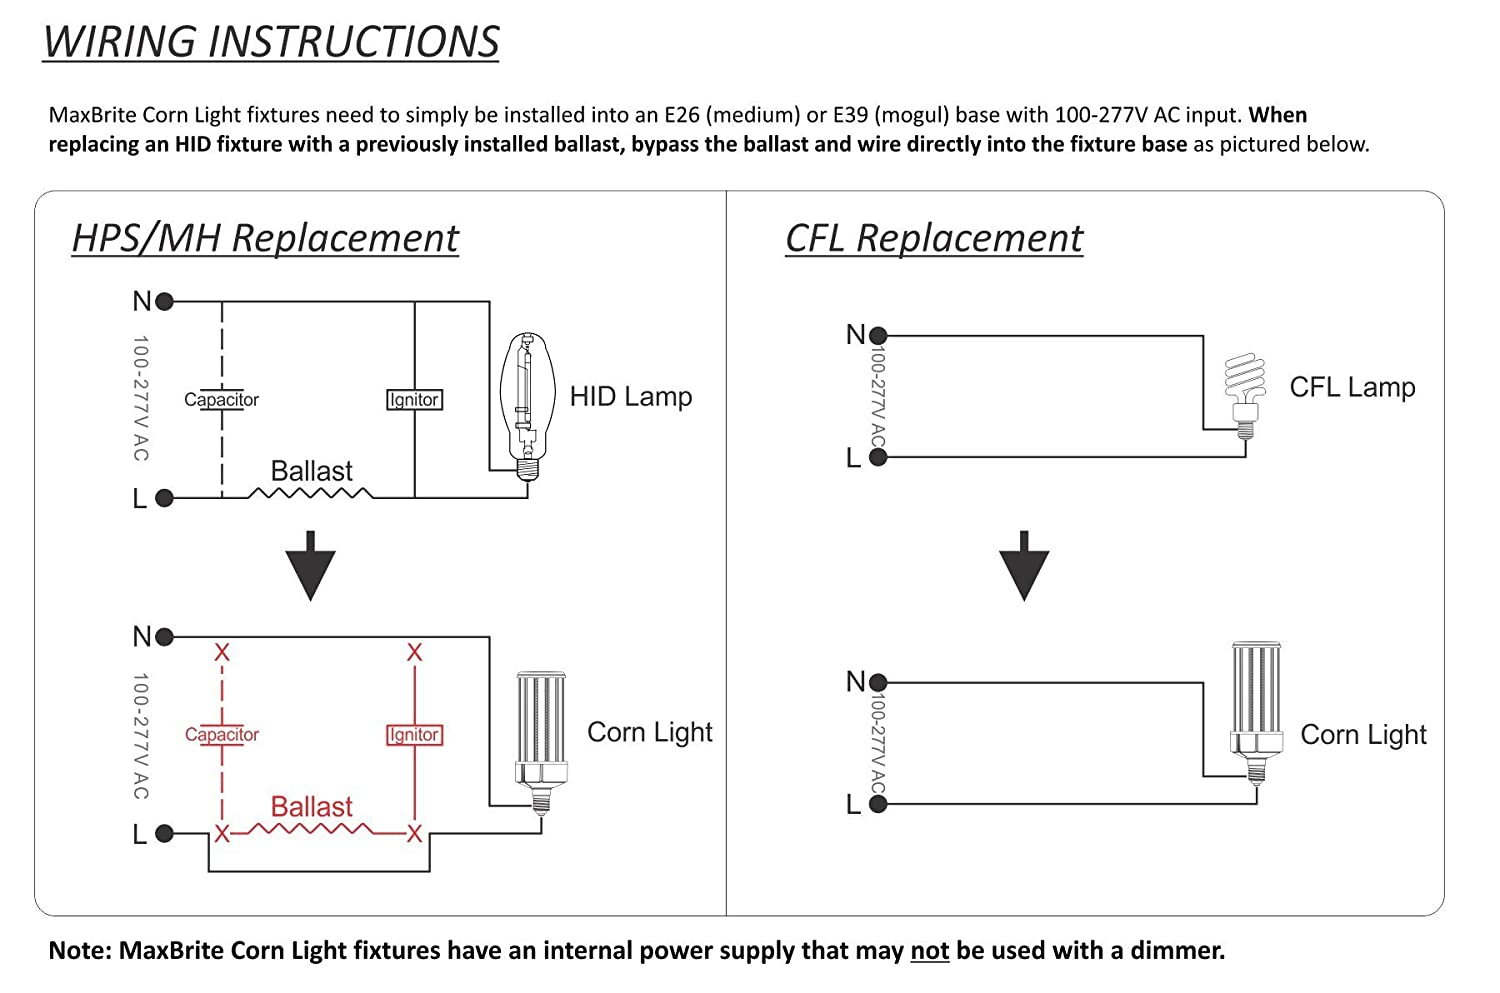 Hid Light 277v Electrical Wiring Diagrams Schematics Diagram For Fixtures 120w Led Corn Bulb 5000k Replaces 800w 13 800 Lumens Mogul Switch